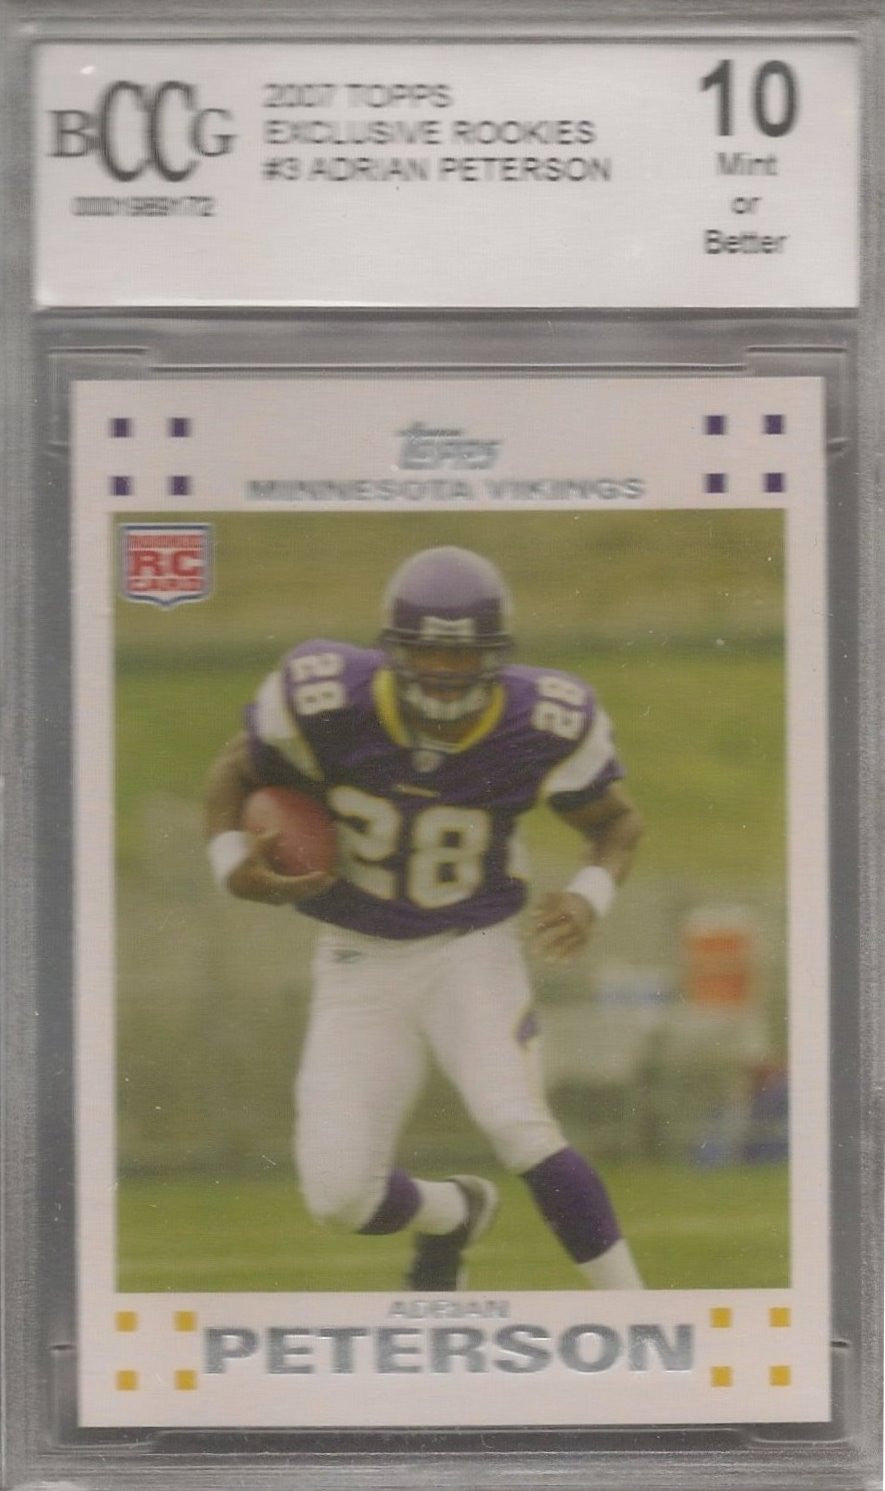 Adrian Peterson, 2007 Topps Exclusive Rookies, BCCG 10